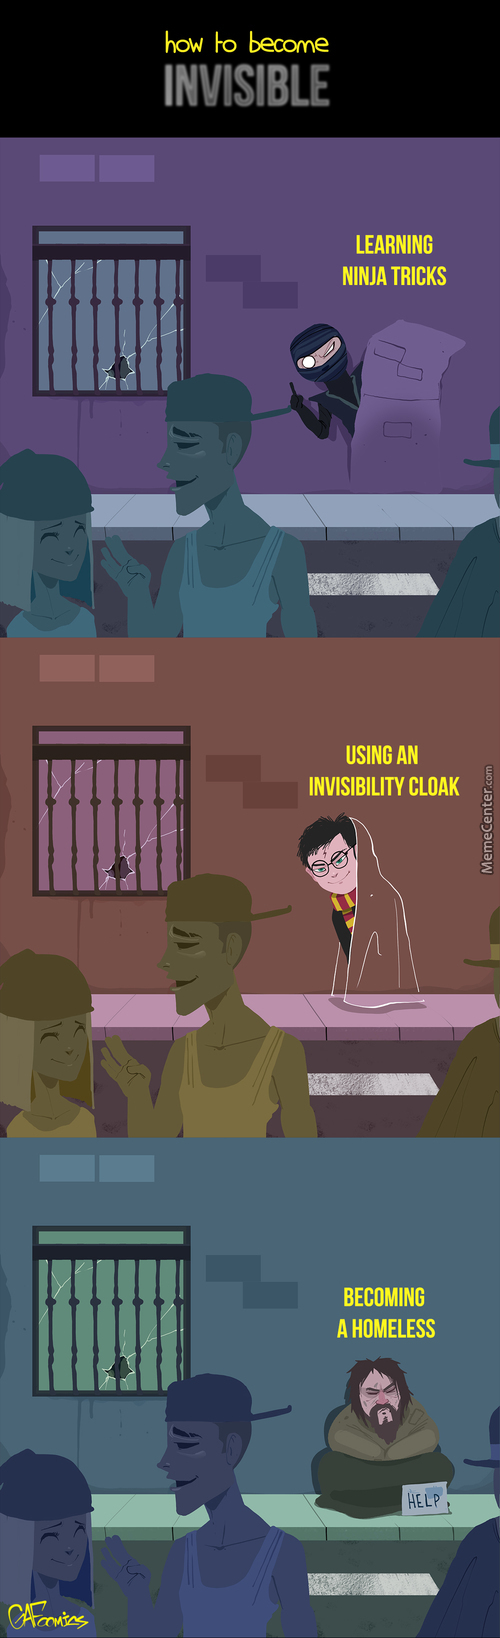 How To Become Invisible